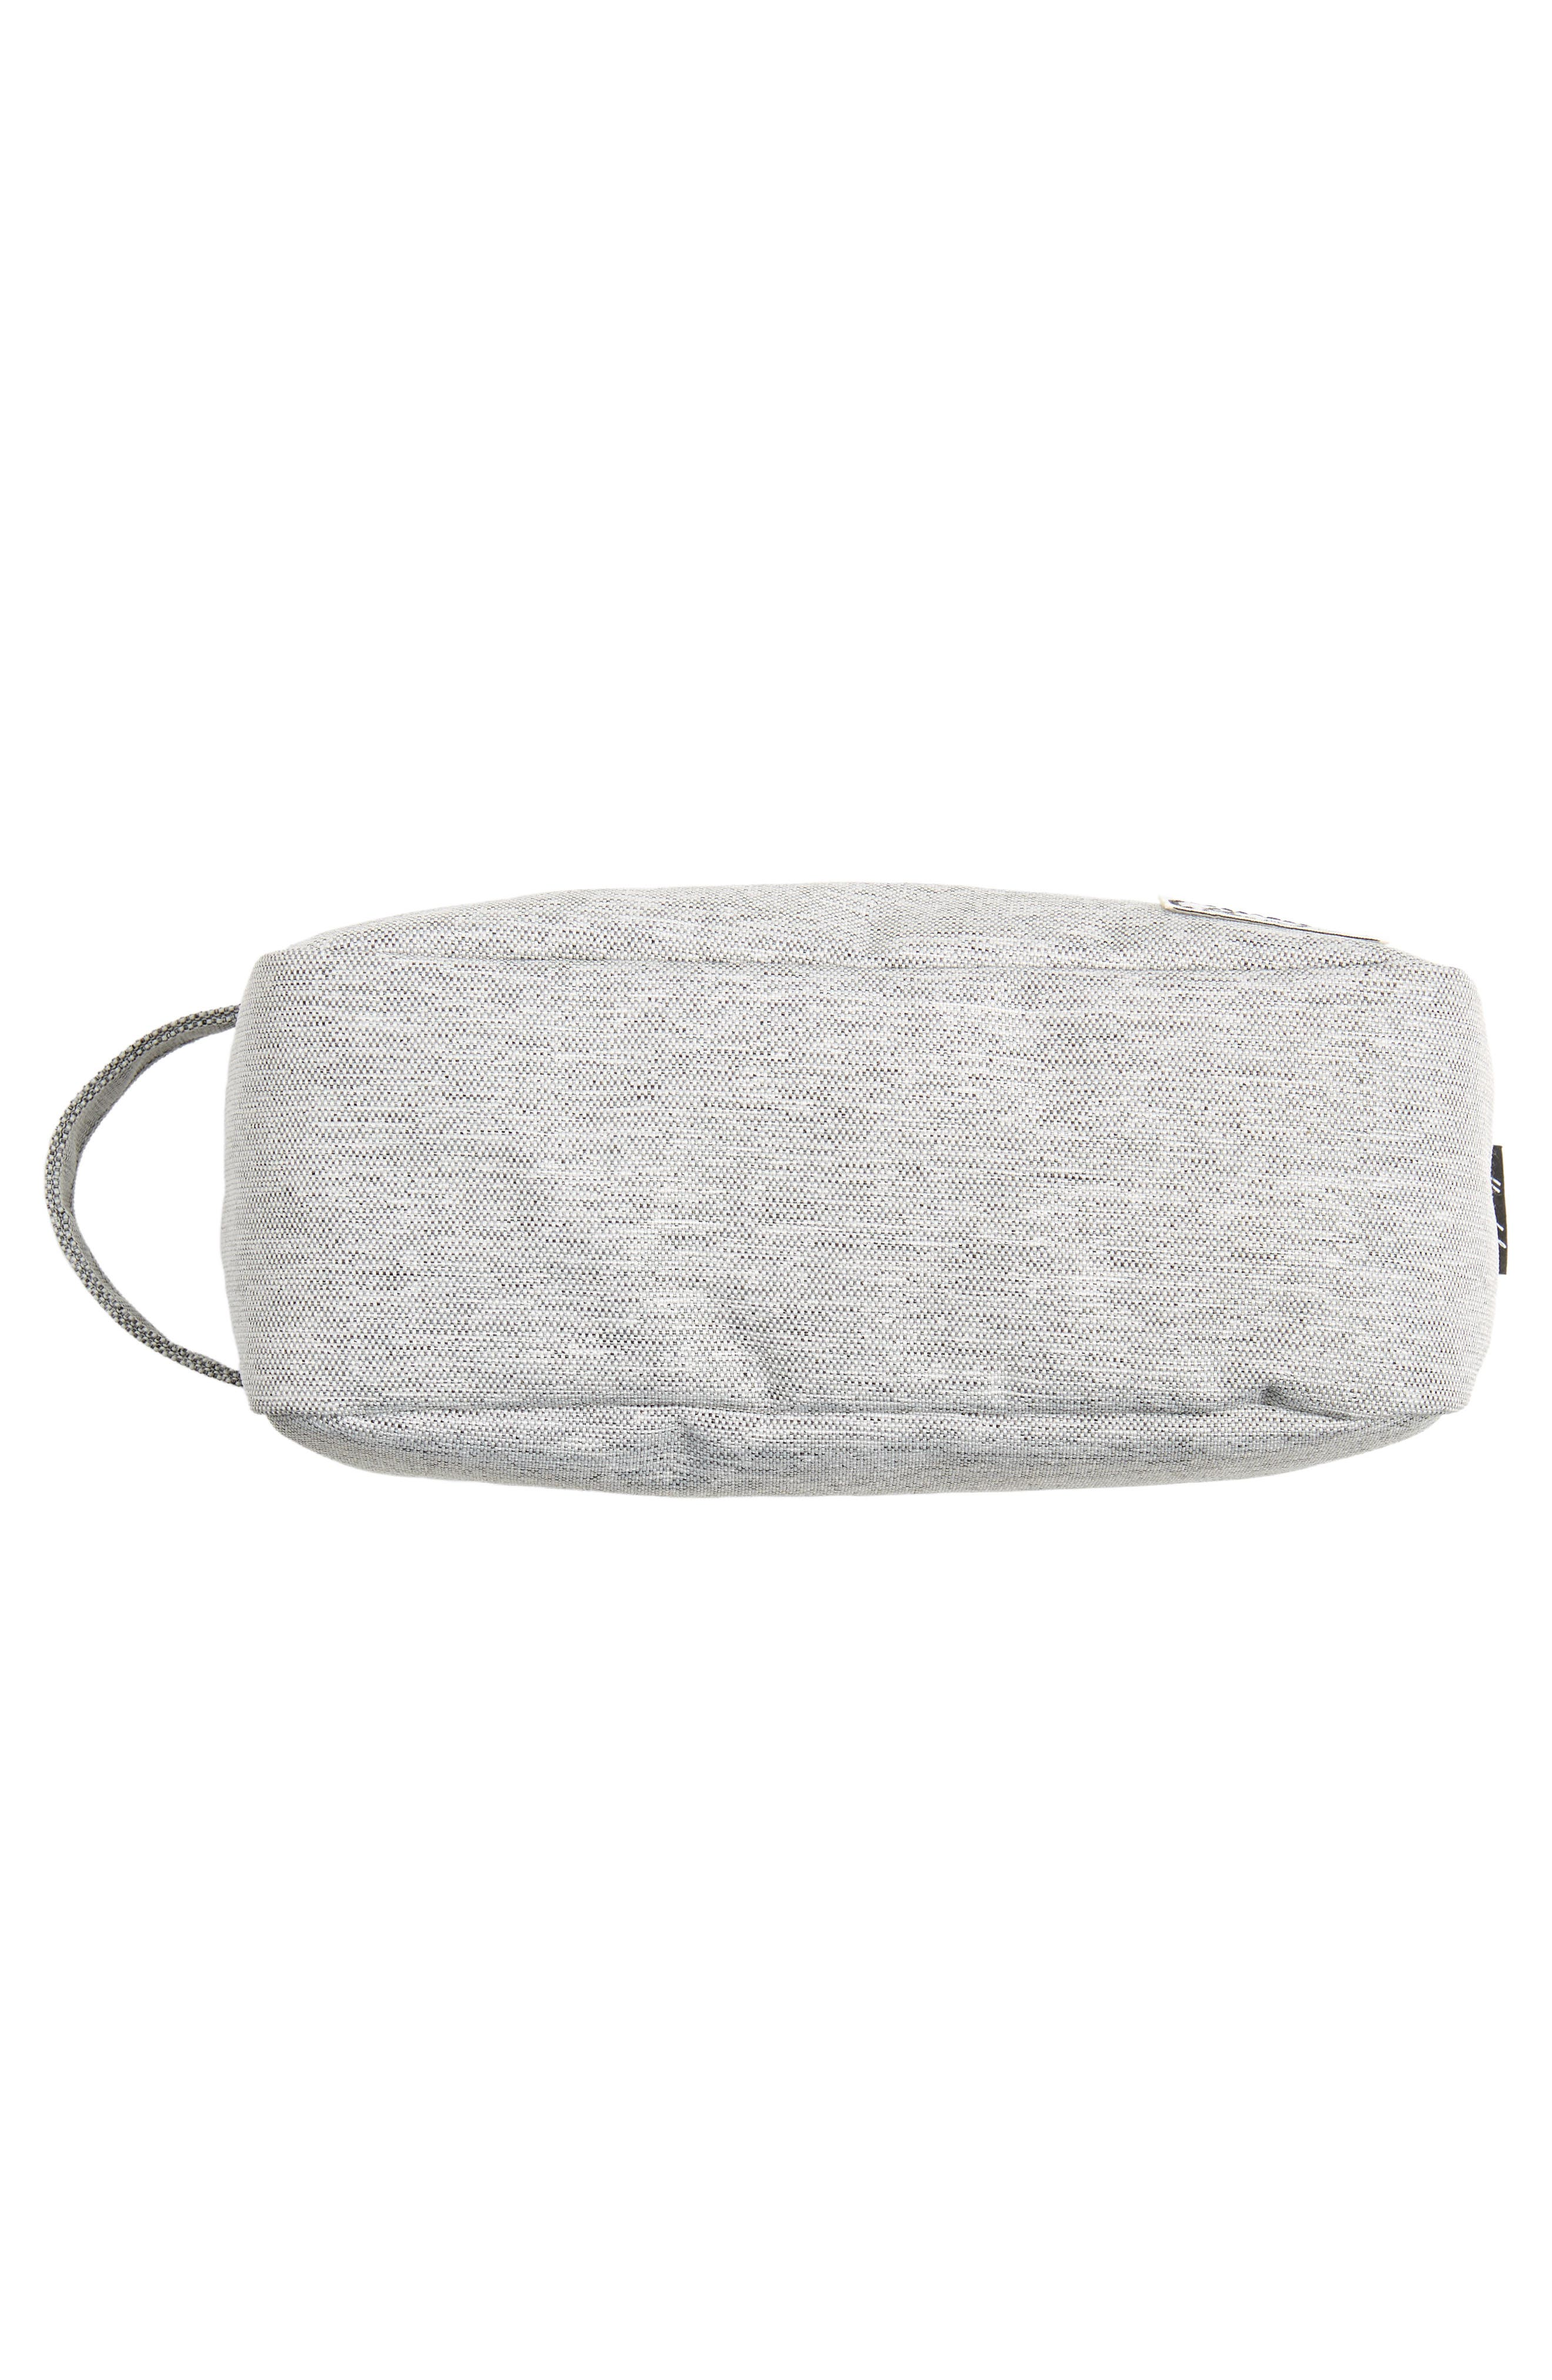 Chapter Carry-On Travel Kit,                             Alternate thumbnail 3, color,                             Light Grey Crosshatch